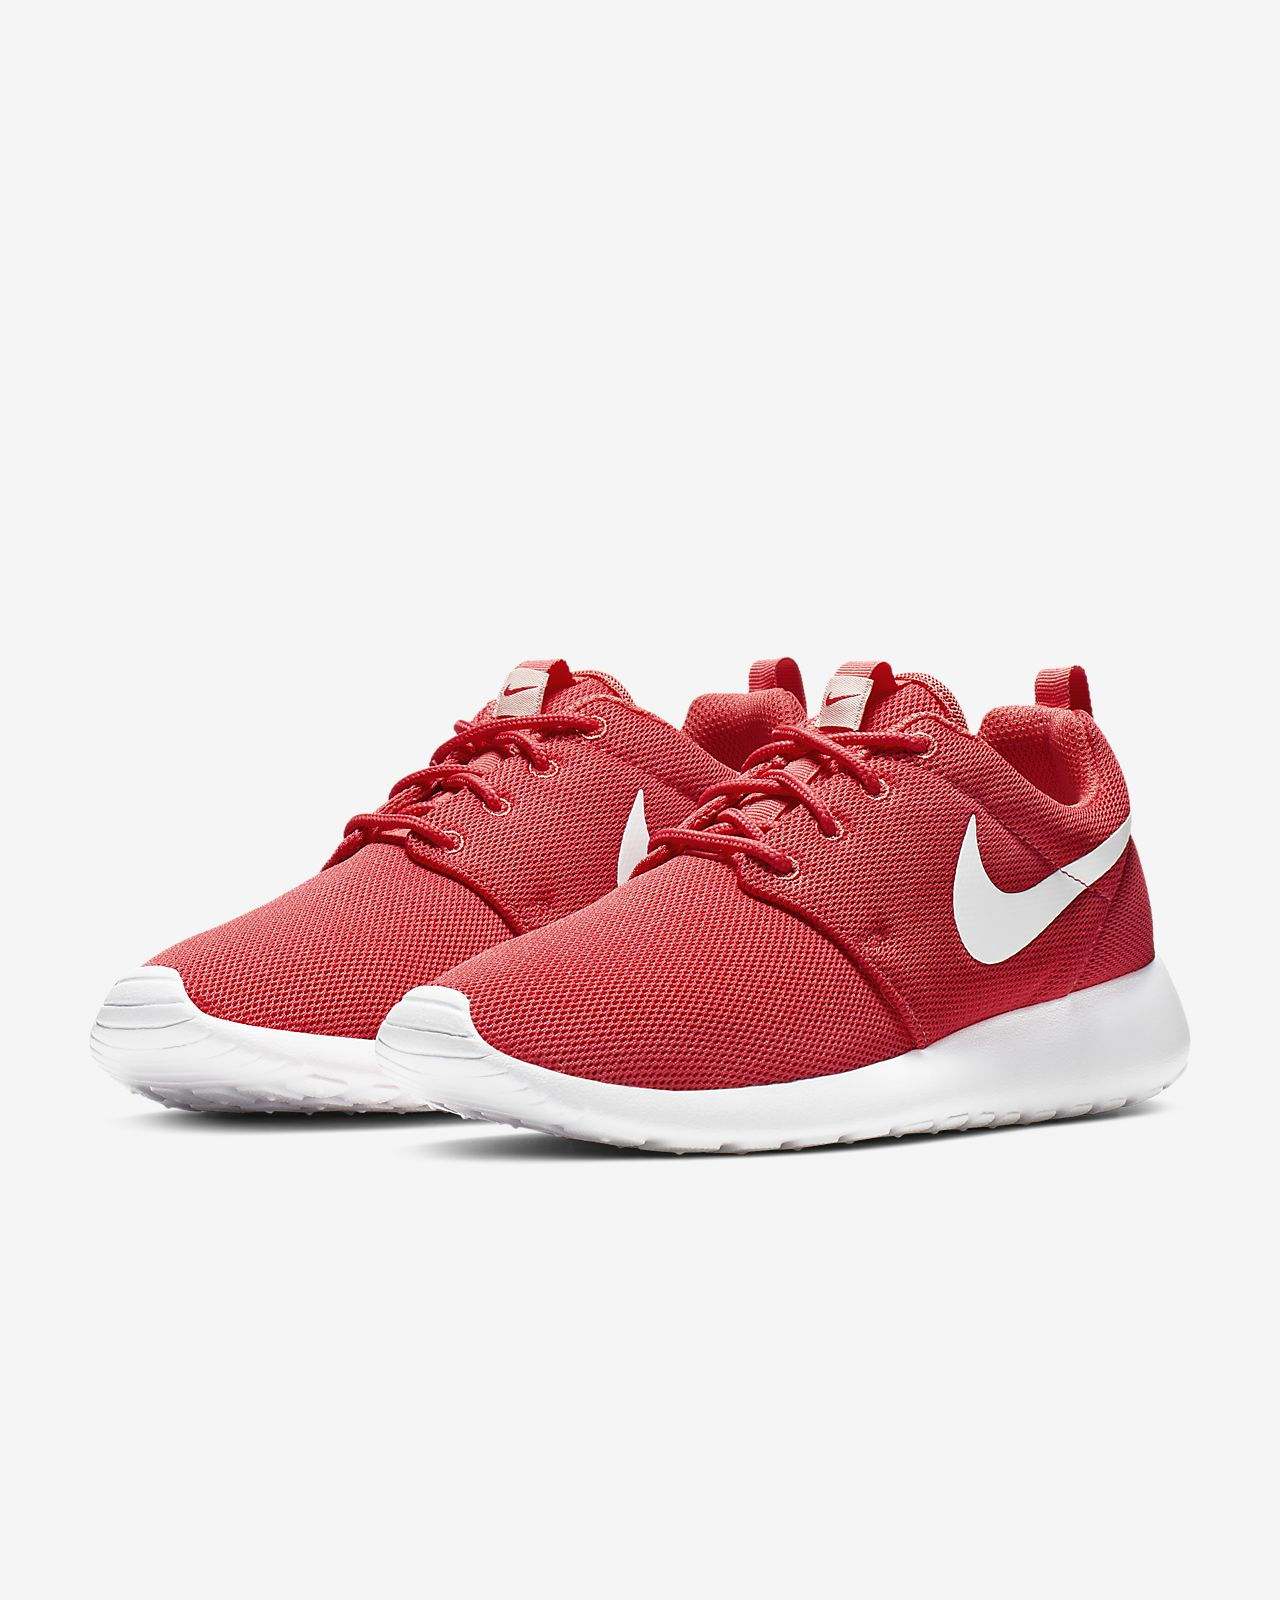 premium selection ad926 eb83e ... Nike Roshe One Women s Shoe